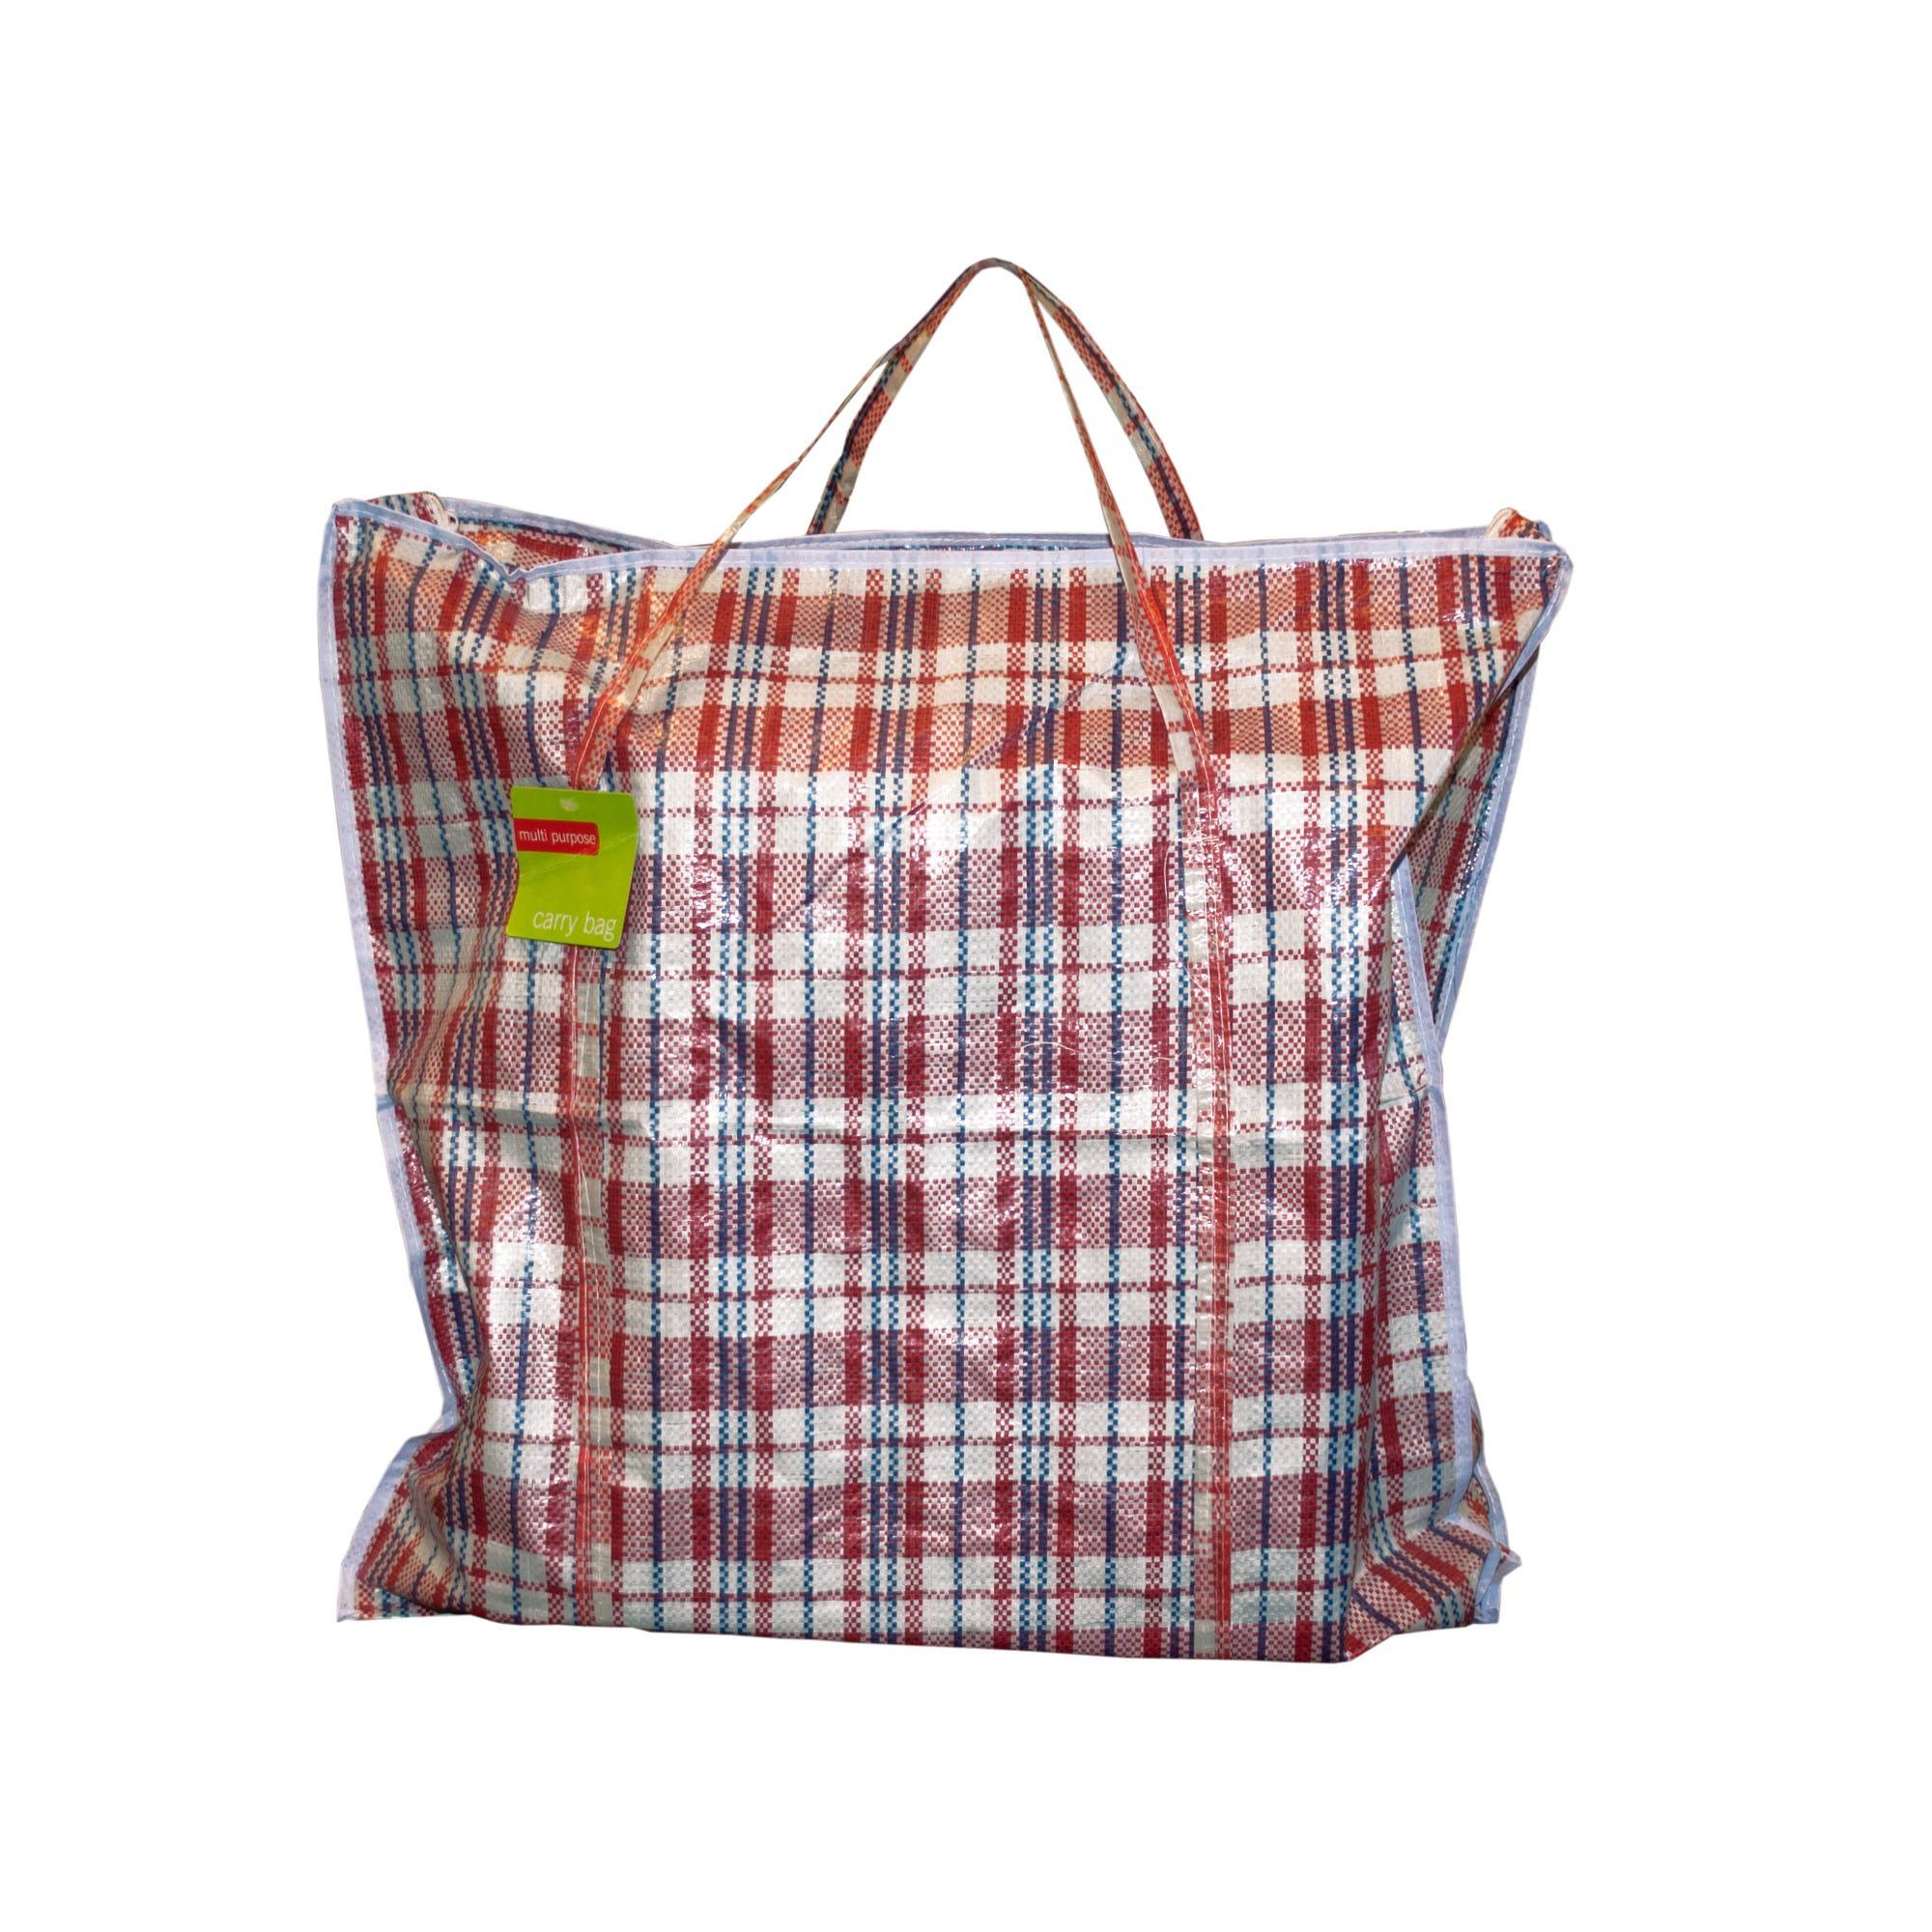 extra-large-multi-purpose-tote-BAG-18